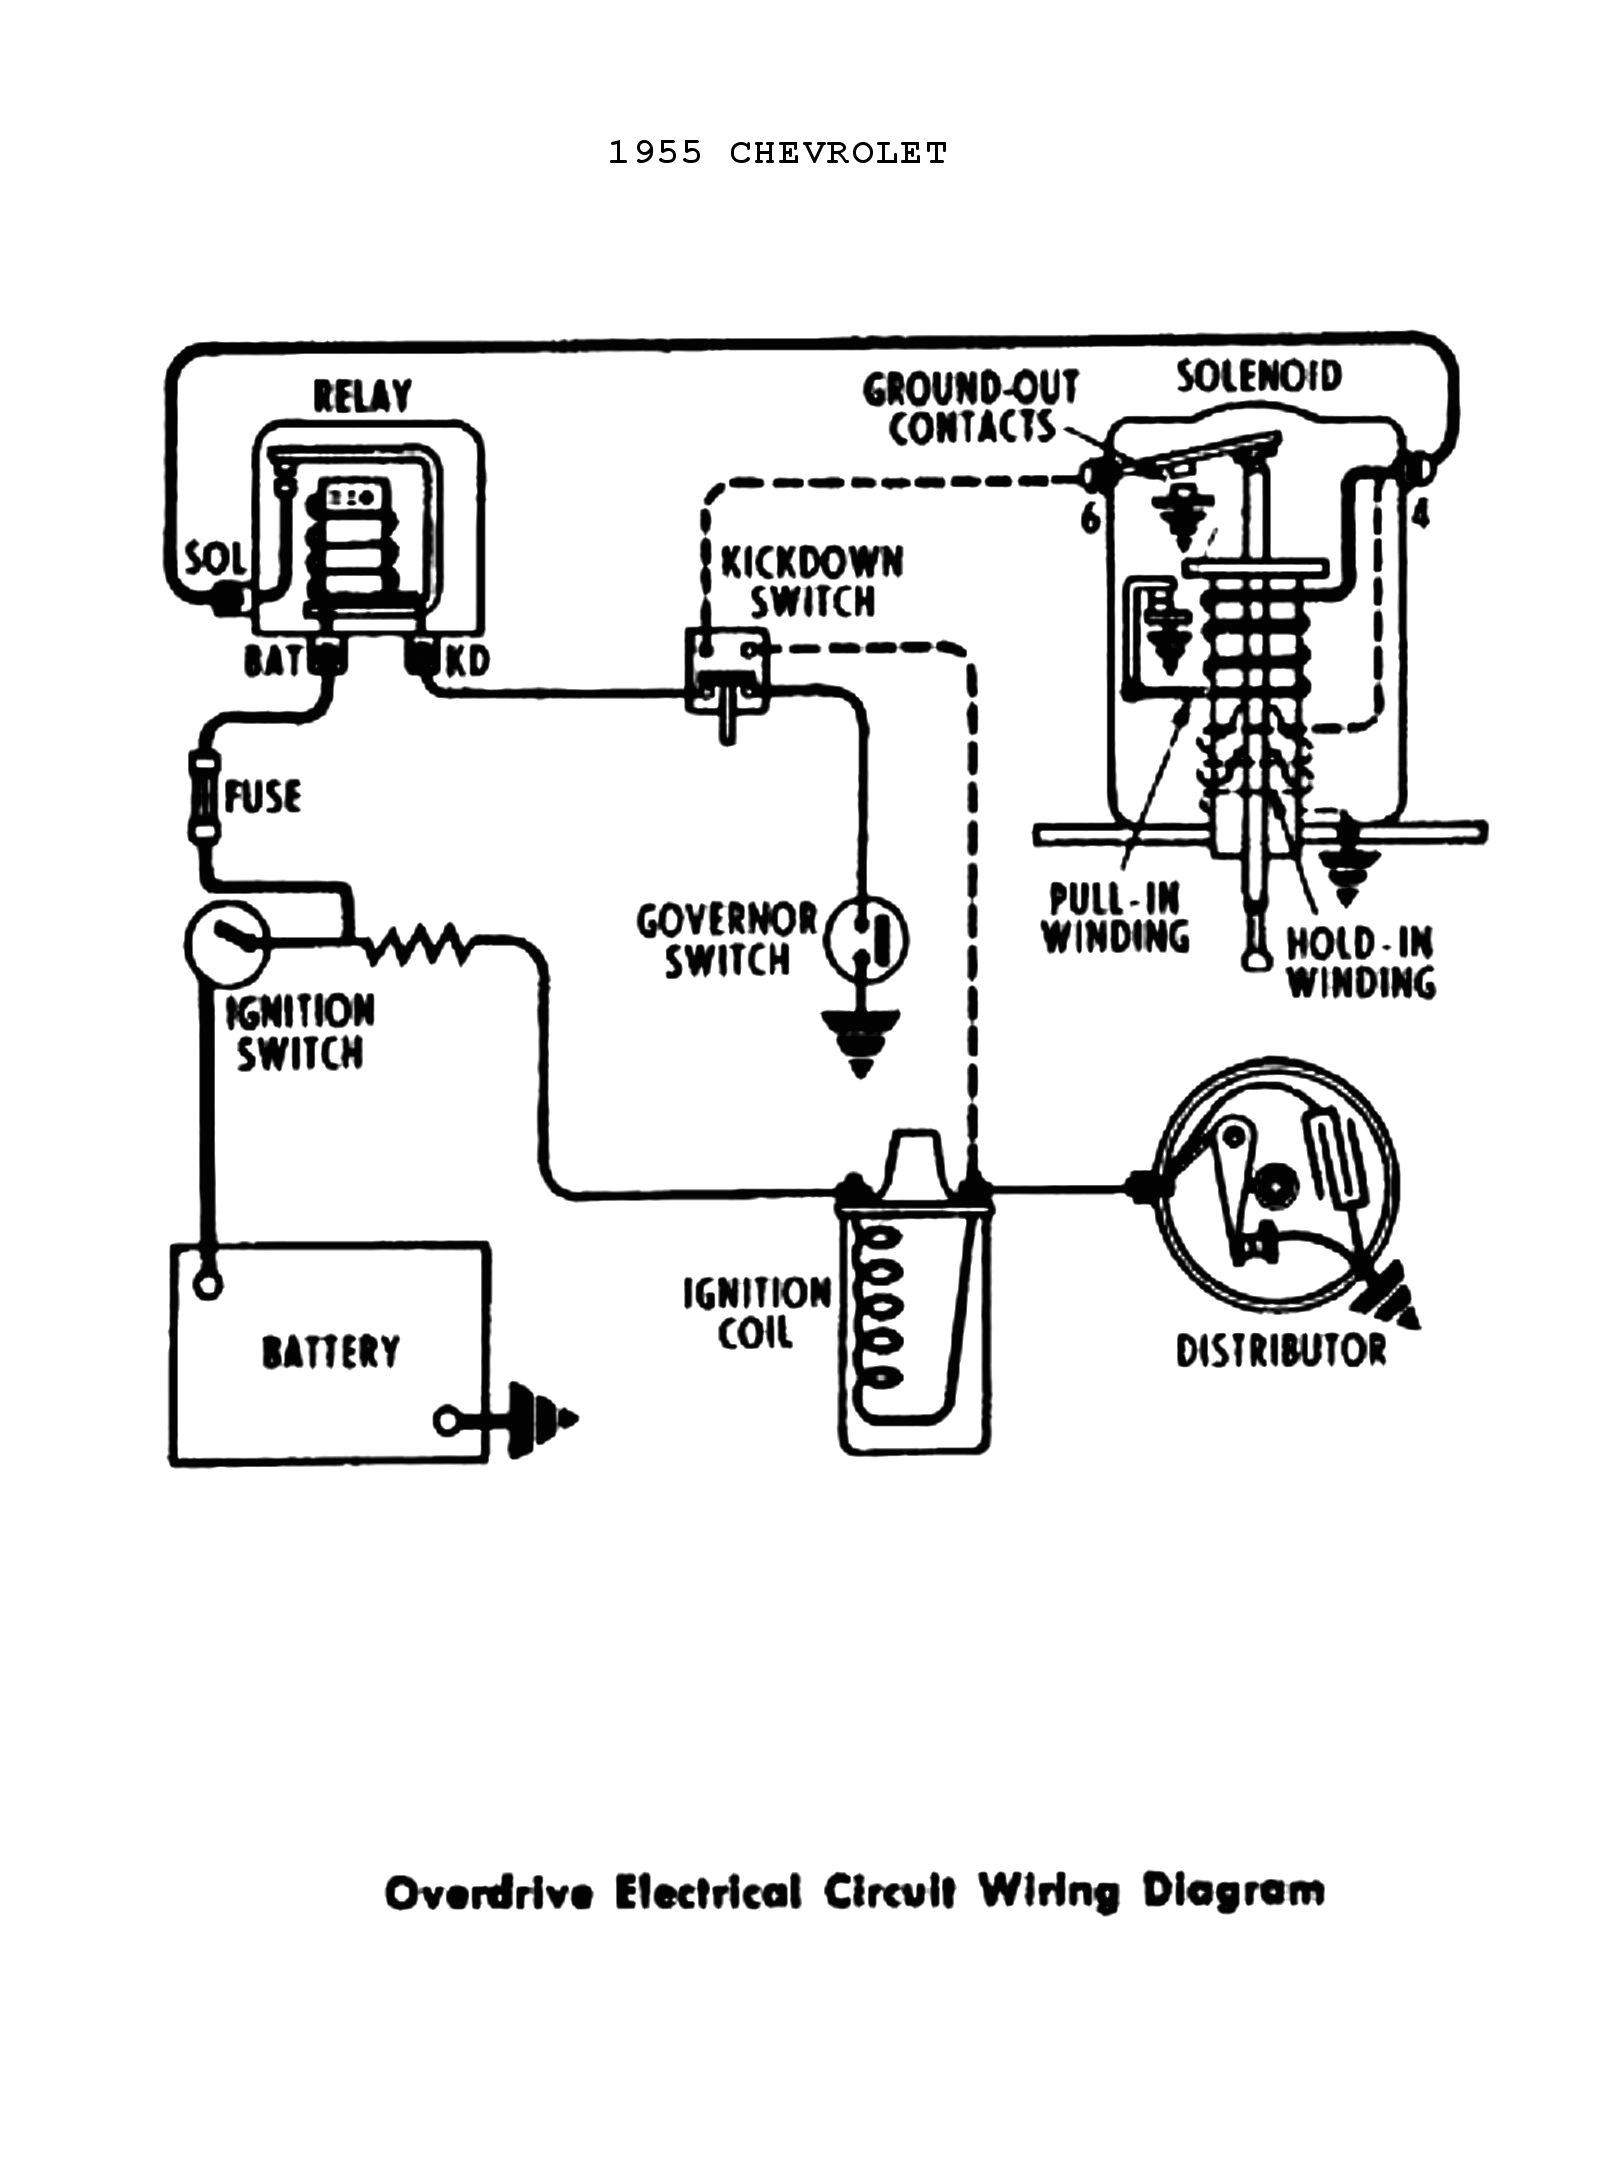 55 chevy ignition wiring wiring diagram ignition wiring diagram chevy trailblazer ignition wiring chevy